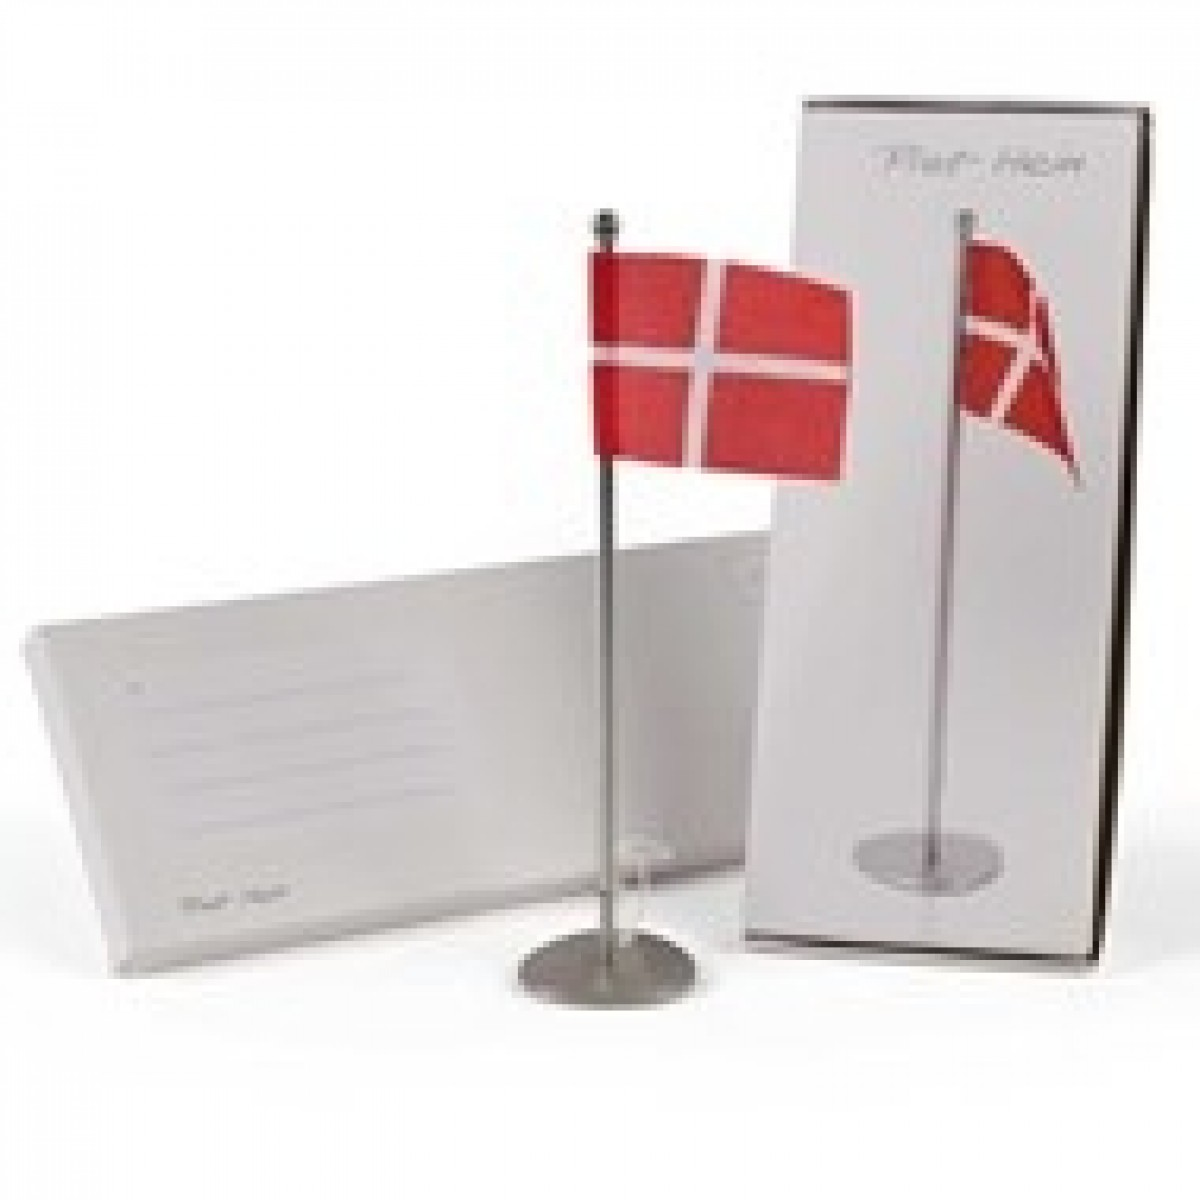 c6e47bc10781 FLAG - Piet Hein Tri-superellipse bordflag - højde 25 cm - post it model